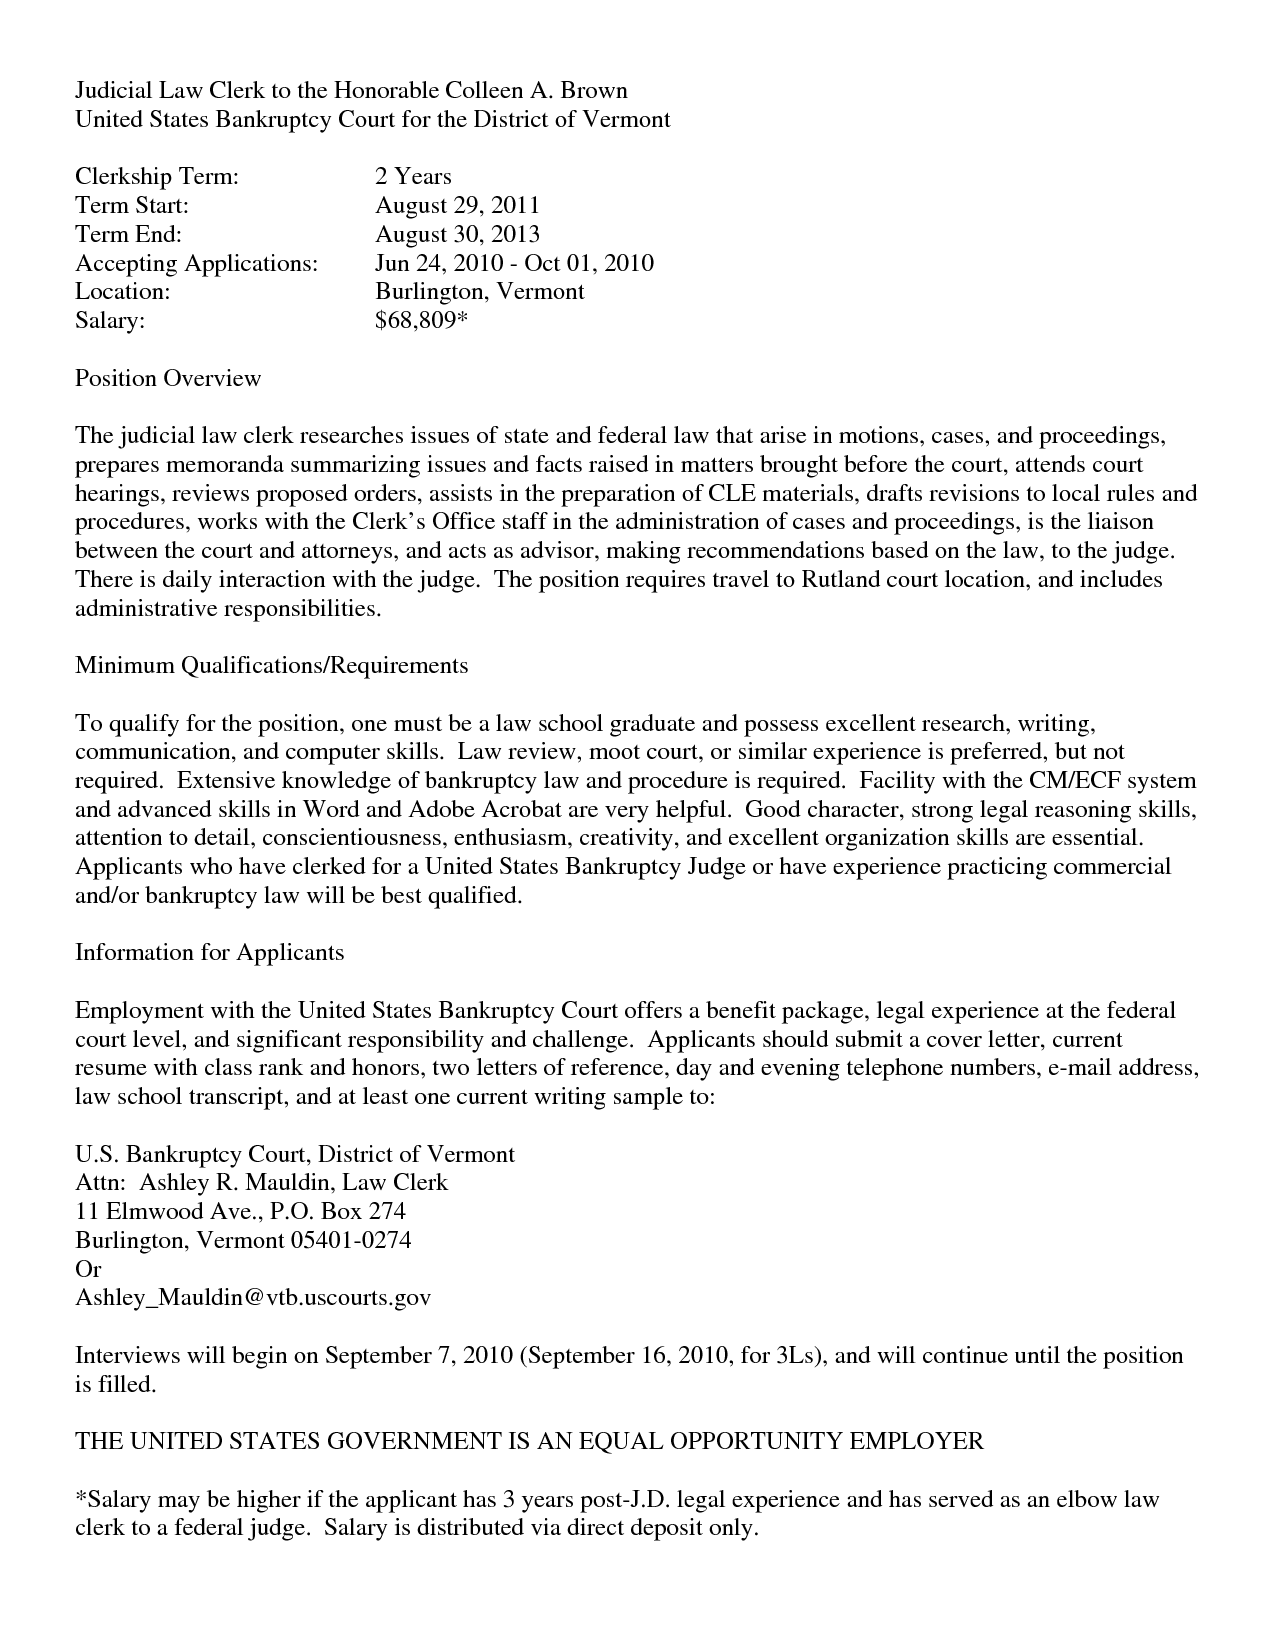 Recommendation Letter Sample For Job ApplicationReference Letter – Sample Professional Letter of Recommendation for Job